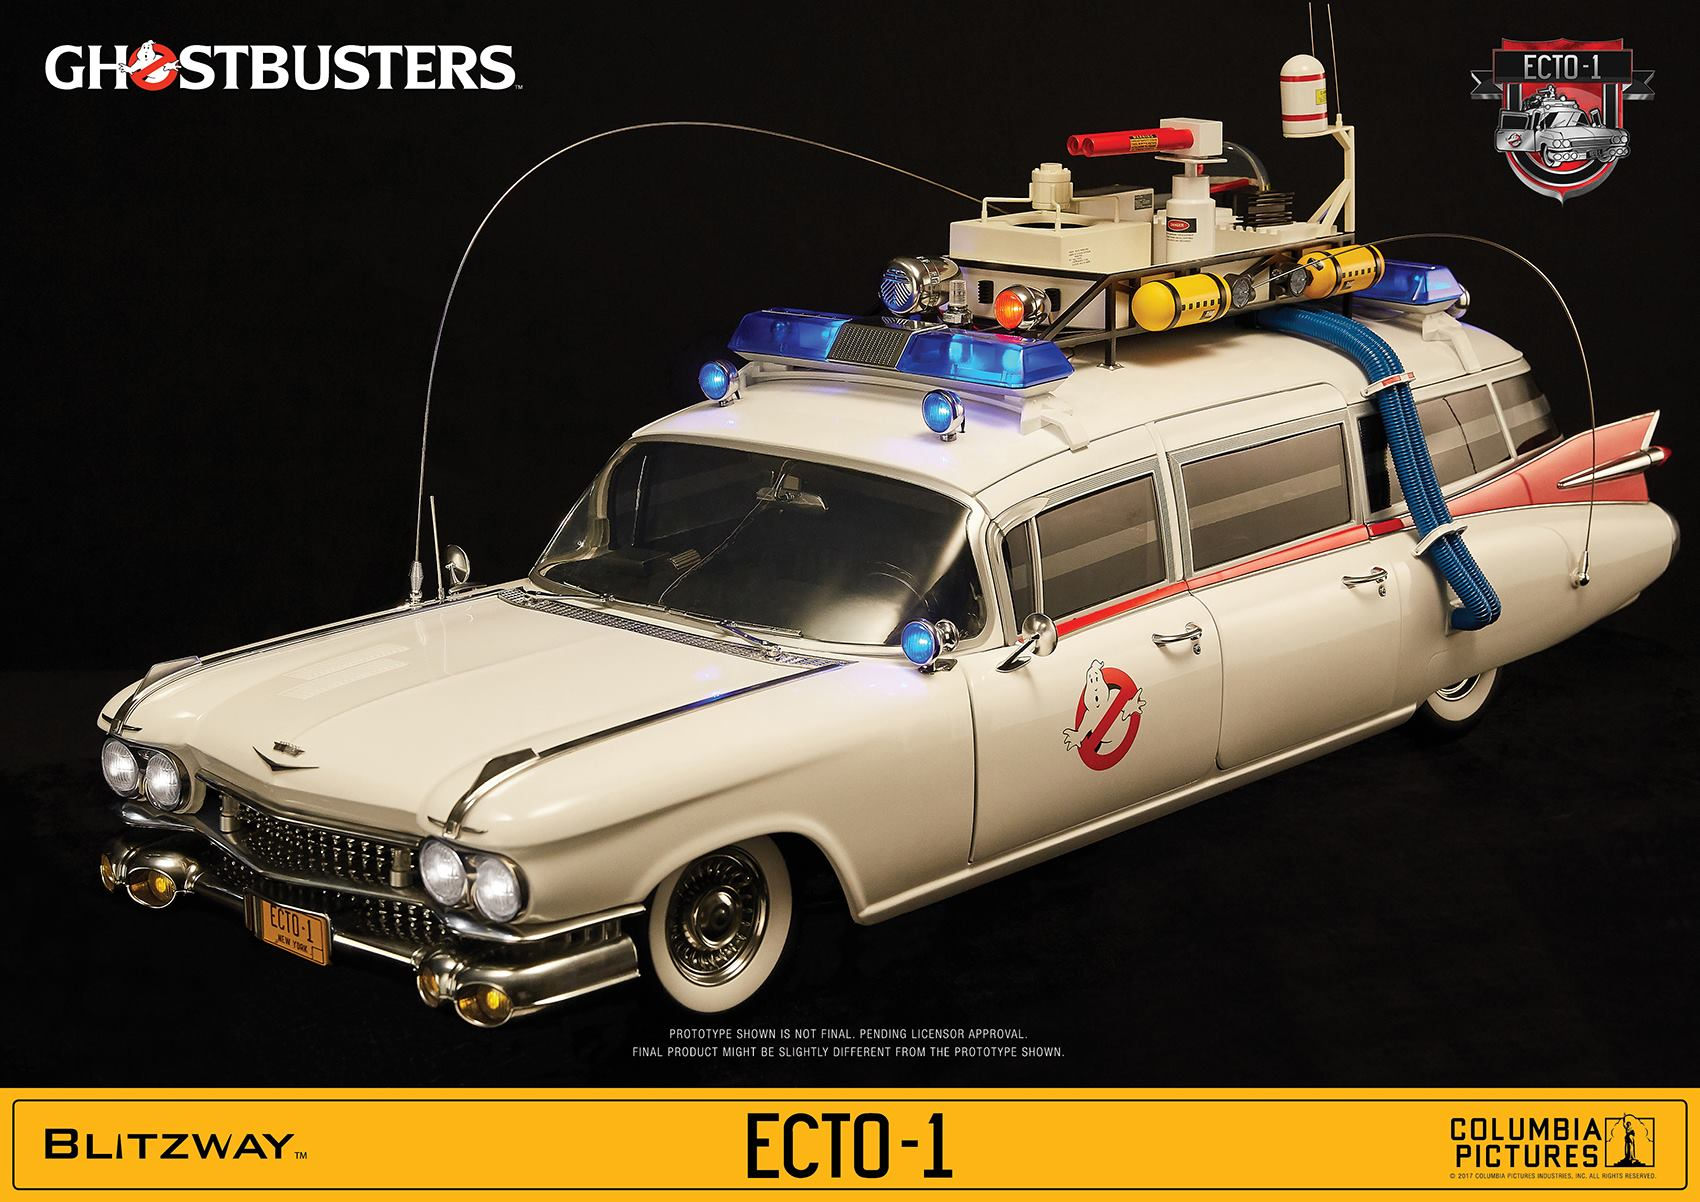 new 1 6 scale ghostbusters ecto 1 vehicle coming from. Black Bedroom Furniture Sets. Home Design Ideas